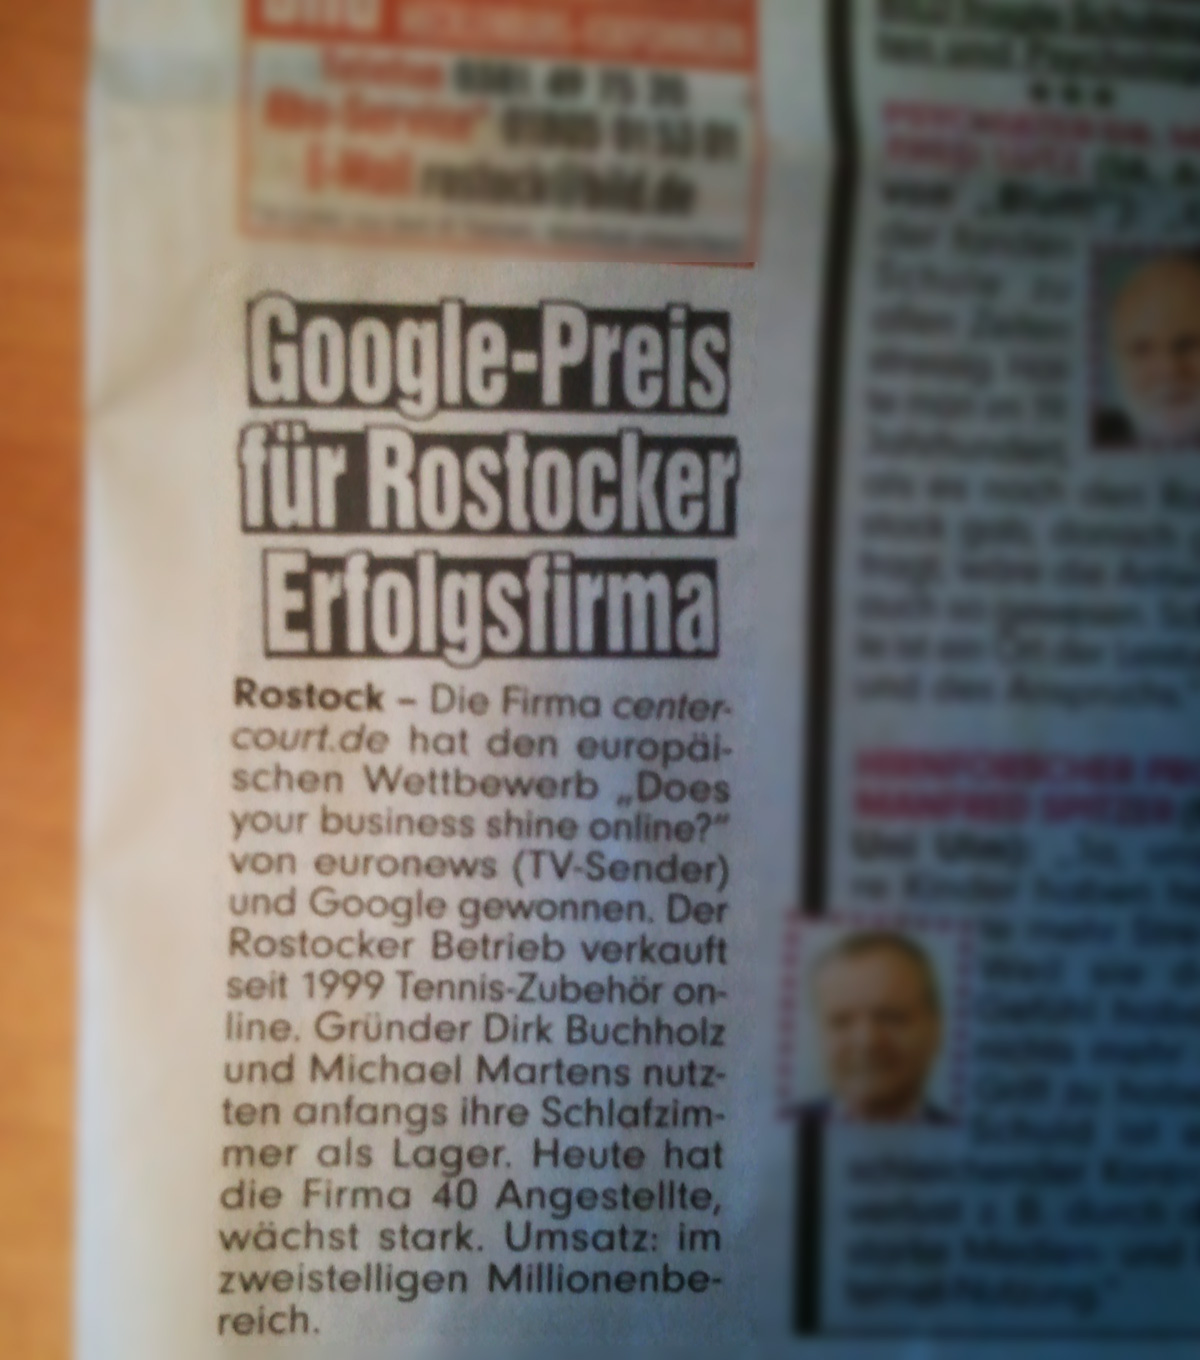 euronews business award with google screendesign by. Black Bedroom Furniture Sets. Home Design Ideas